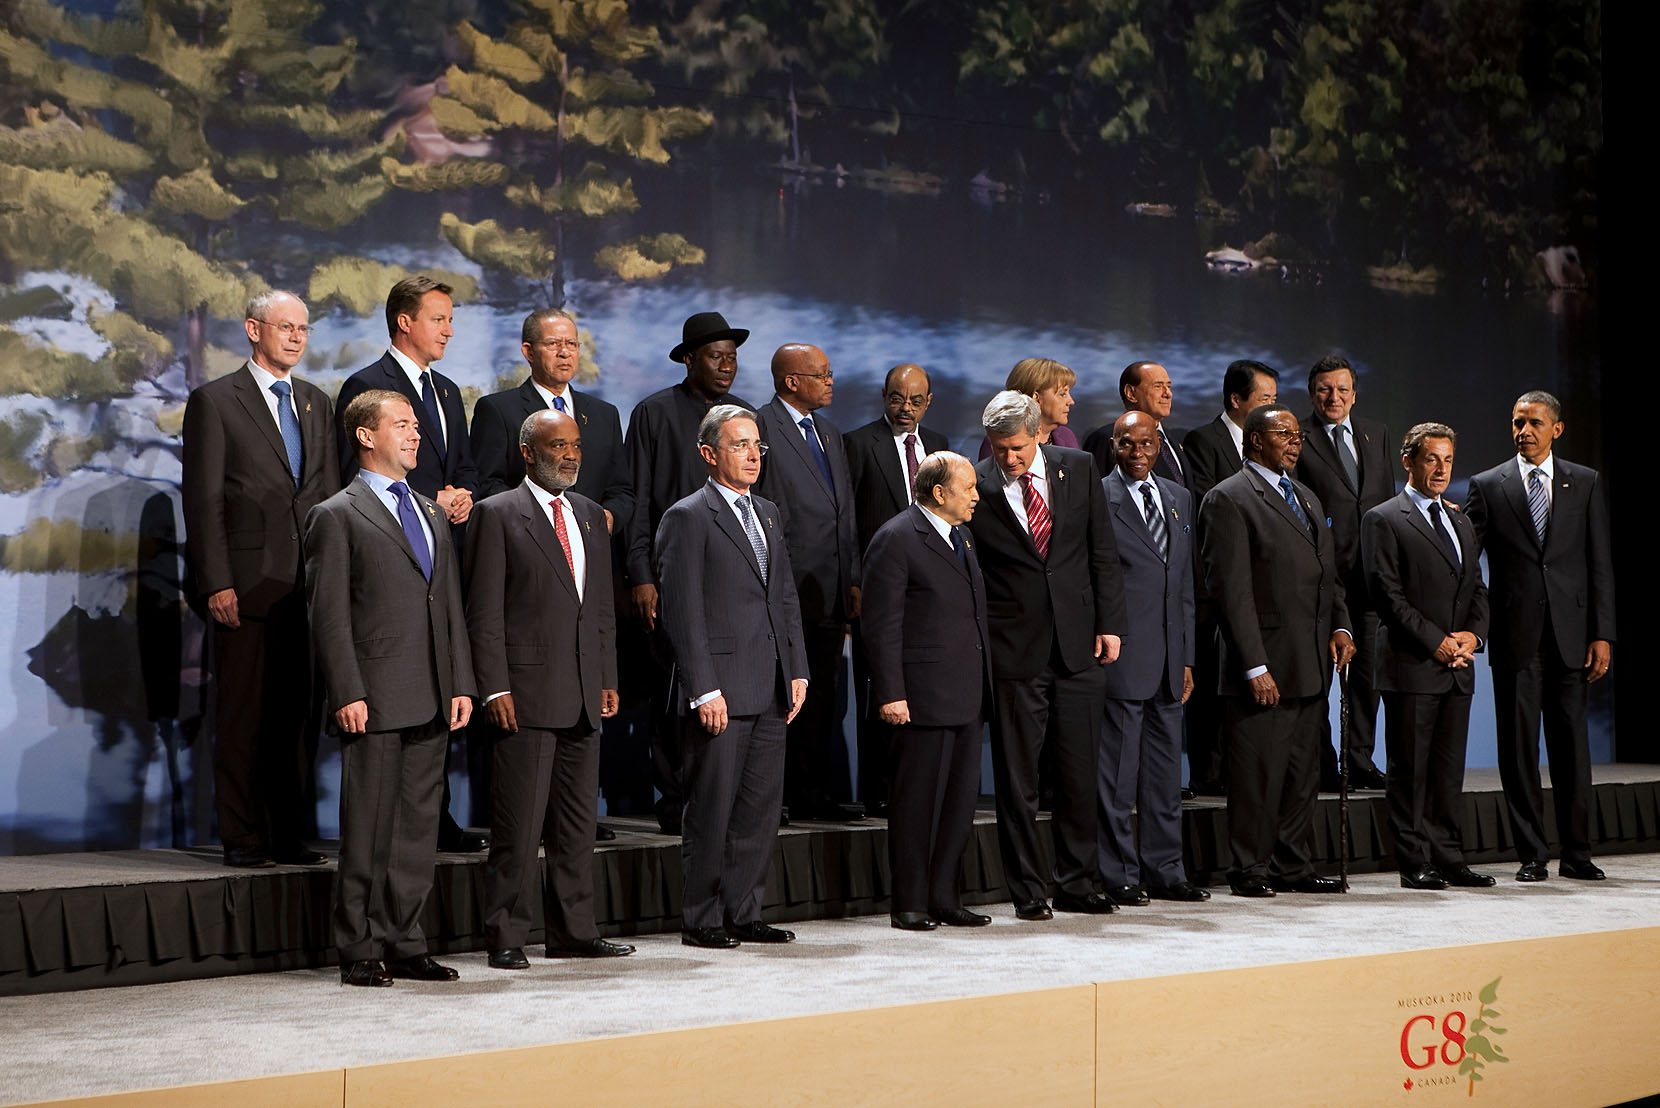 G8 Summit Group Photo in Canada